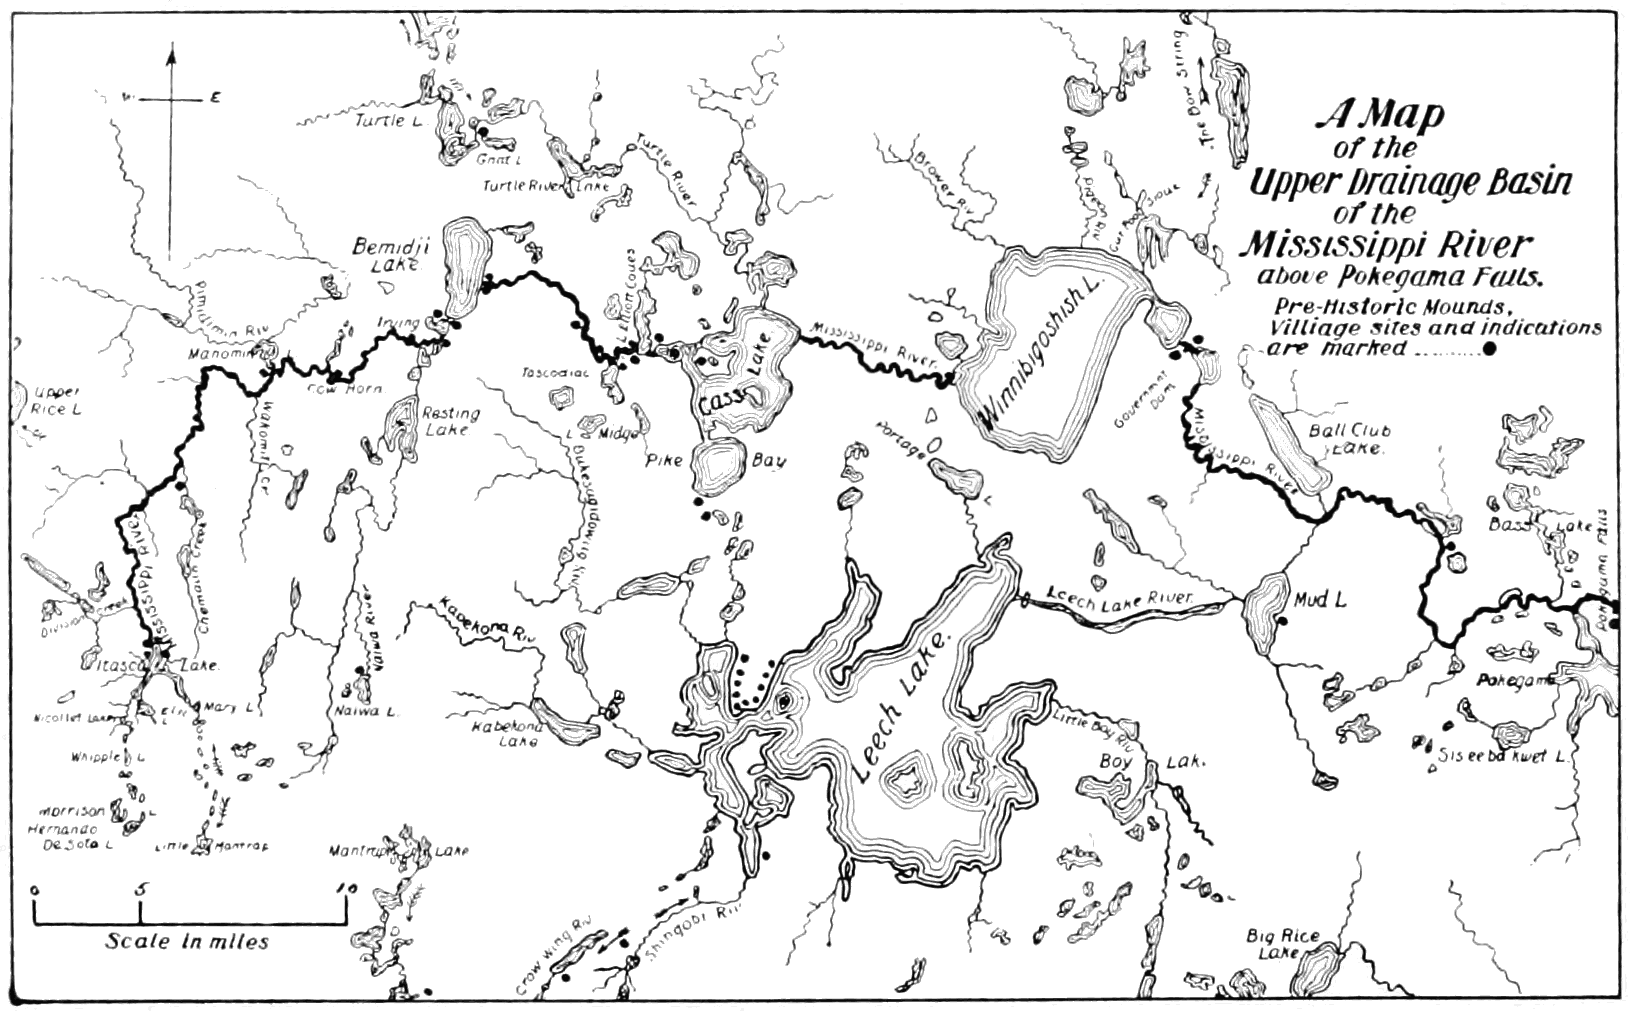 PSM V65 D324 Map of the mississippi basin above pokegama falls.png